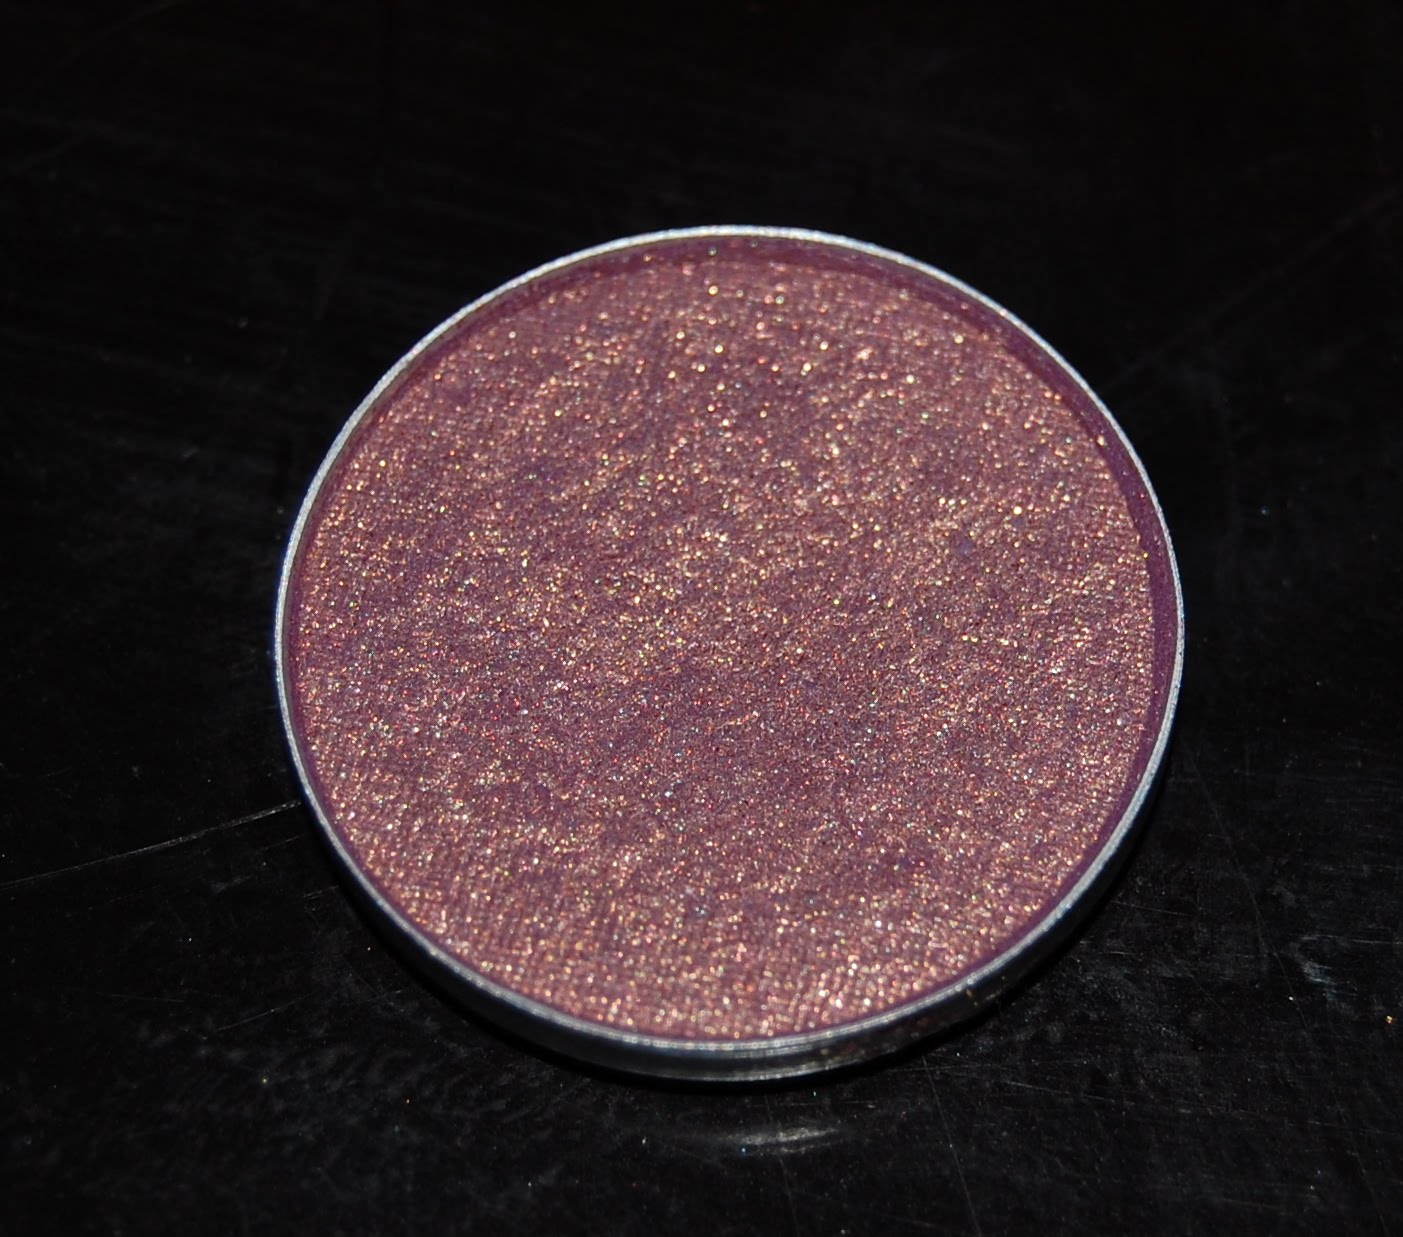 Evermore Beaut 233 Top 15 Favorite Fall Eyeshadows